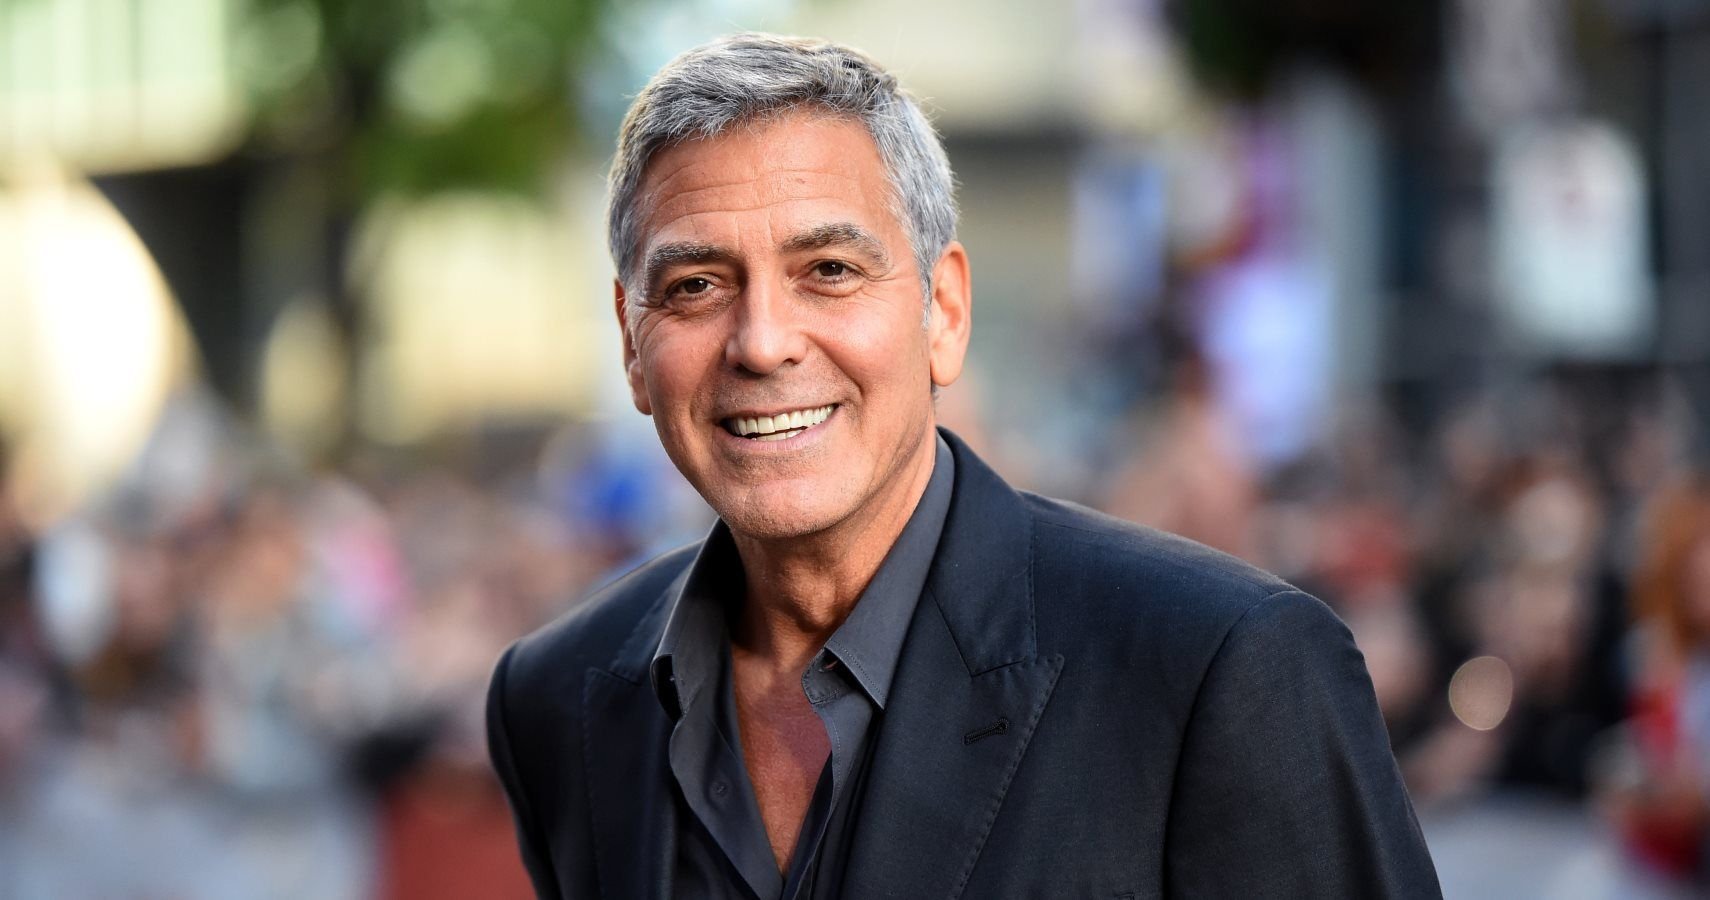 George Clooney Showers His Friends With Money | TheRichest.com